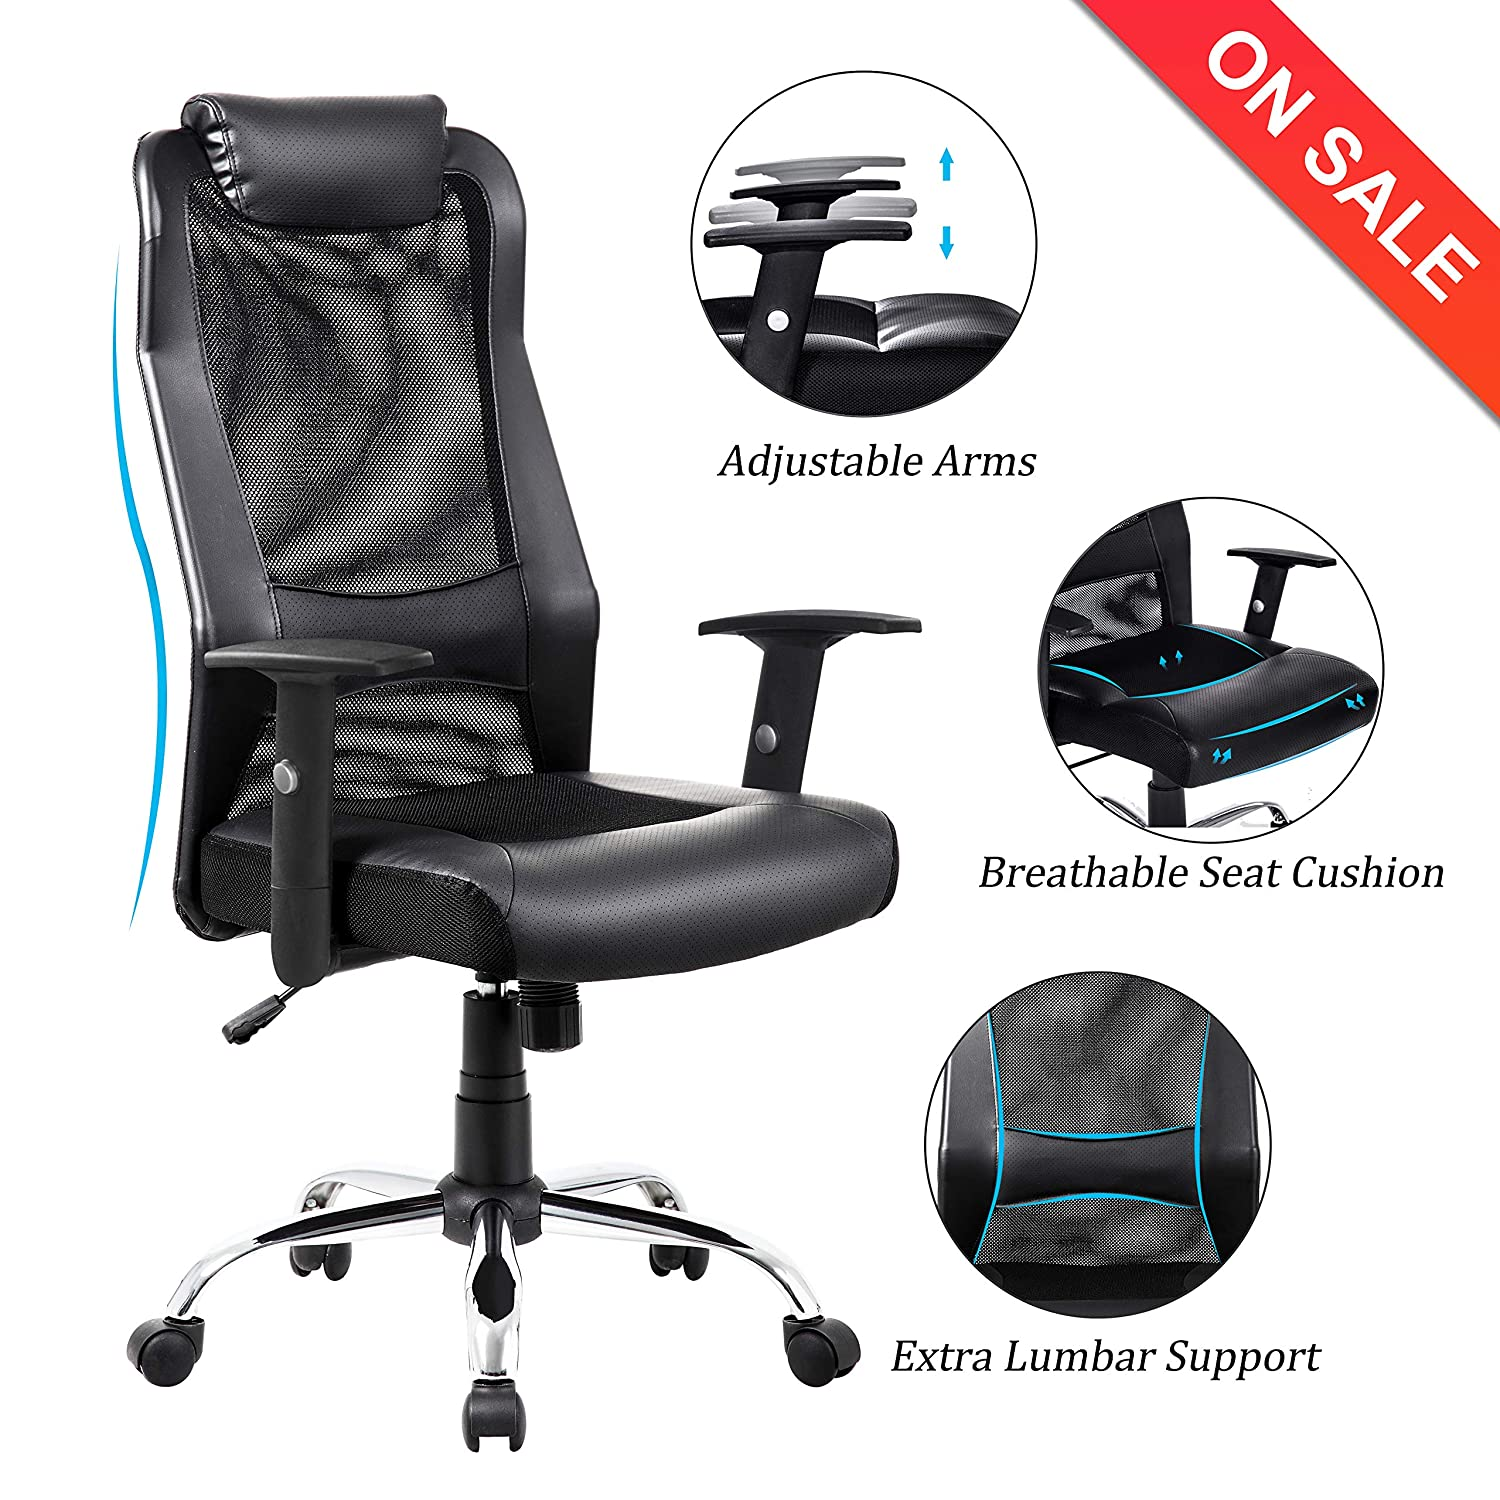 Awe Inspiring Vanbow Extra High Back Mesh Office Chair Adjustable Arms Ergonomic Computer Desk Task Chair With Padded Leather Headrest And Lumbar Support Black Home Interior And Landscaping Transignezvosmurscom